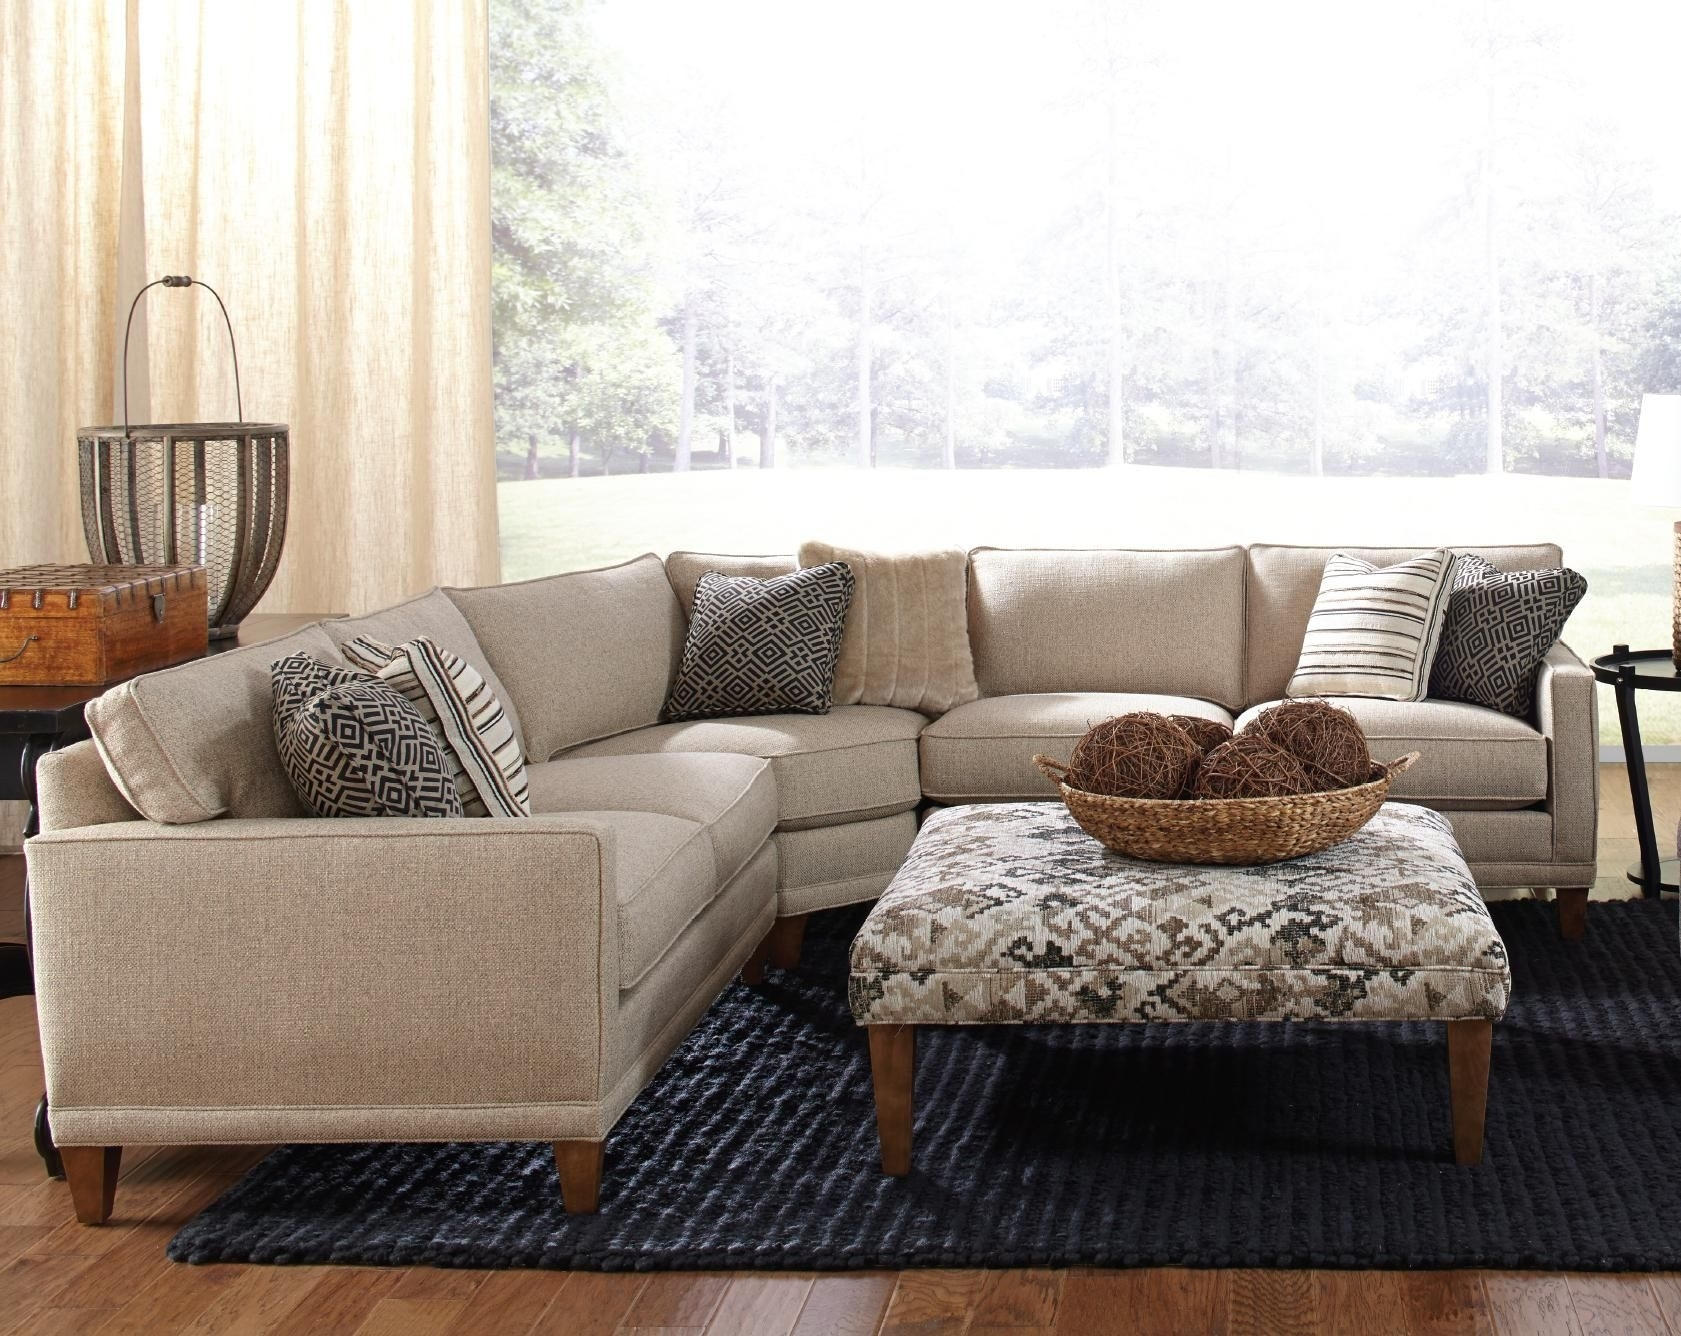 Rowe Townsend Contemporary 3 Piece Sectional Sofa - Sprintz for Blaine 4 Piece Sectionals (Image 21 of 30)